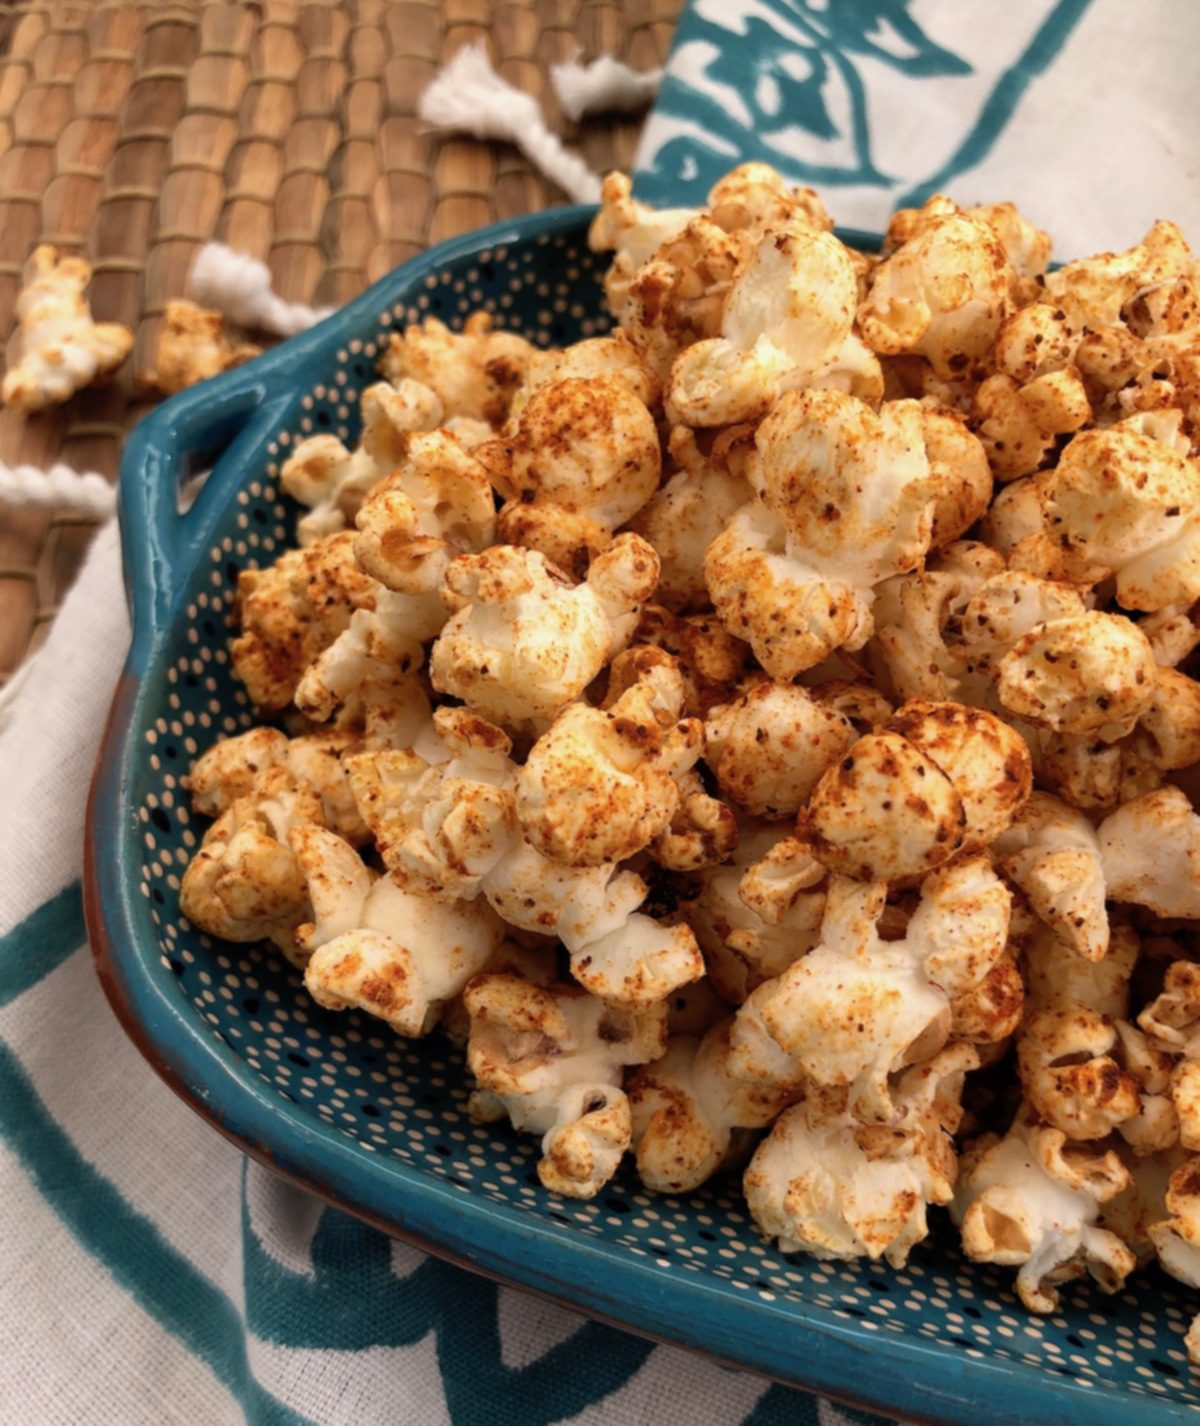 chili spiced popcorn in blue bowl with napkin